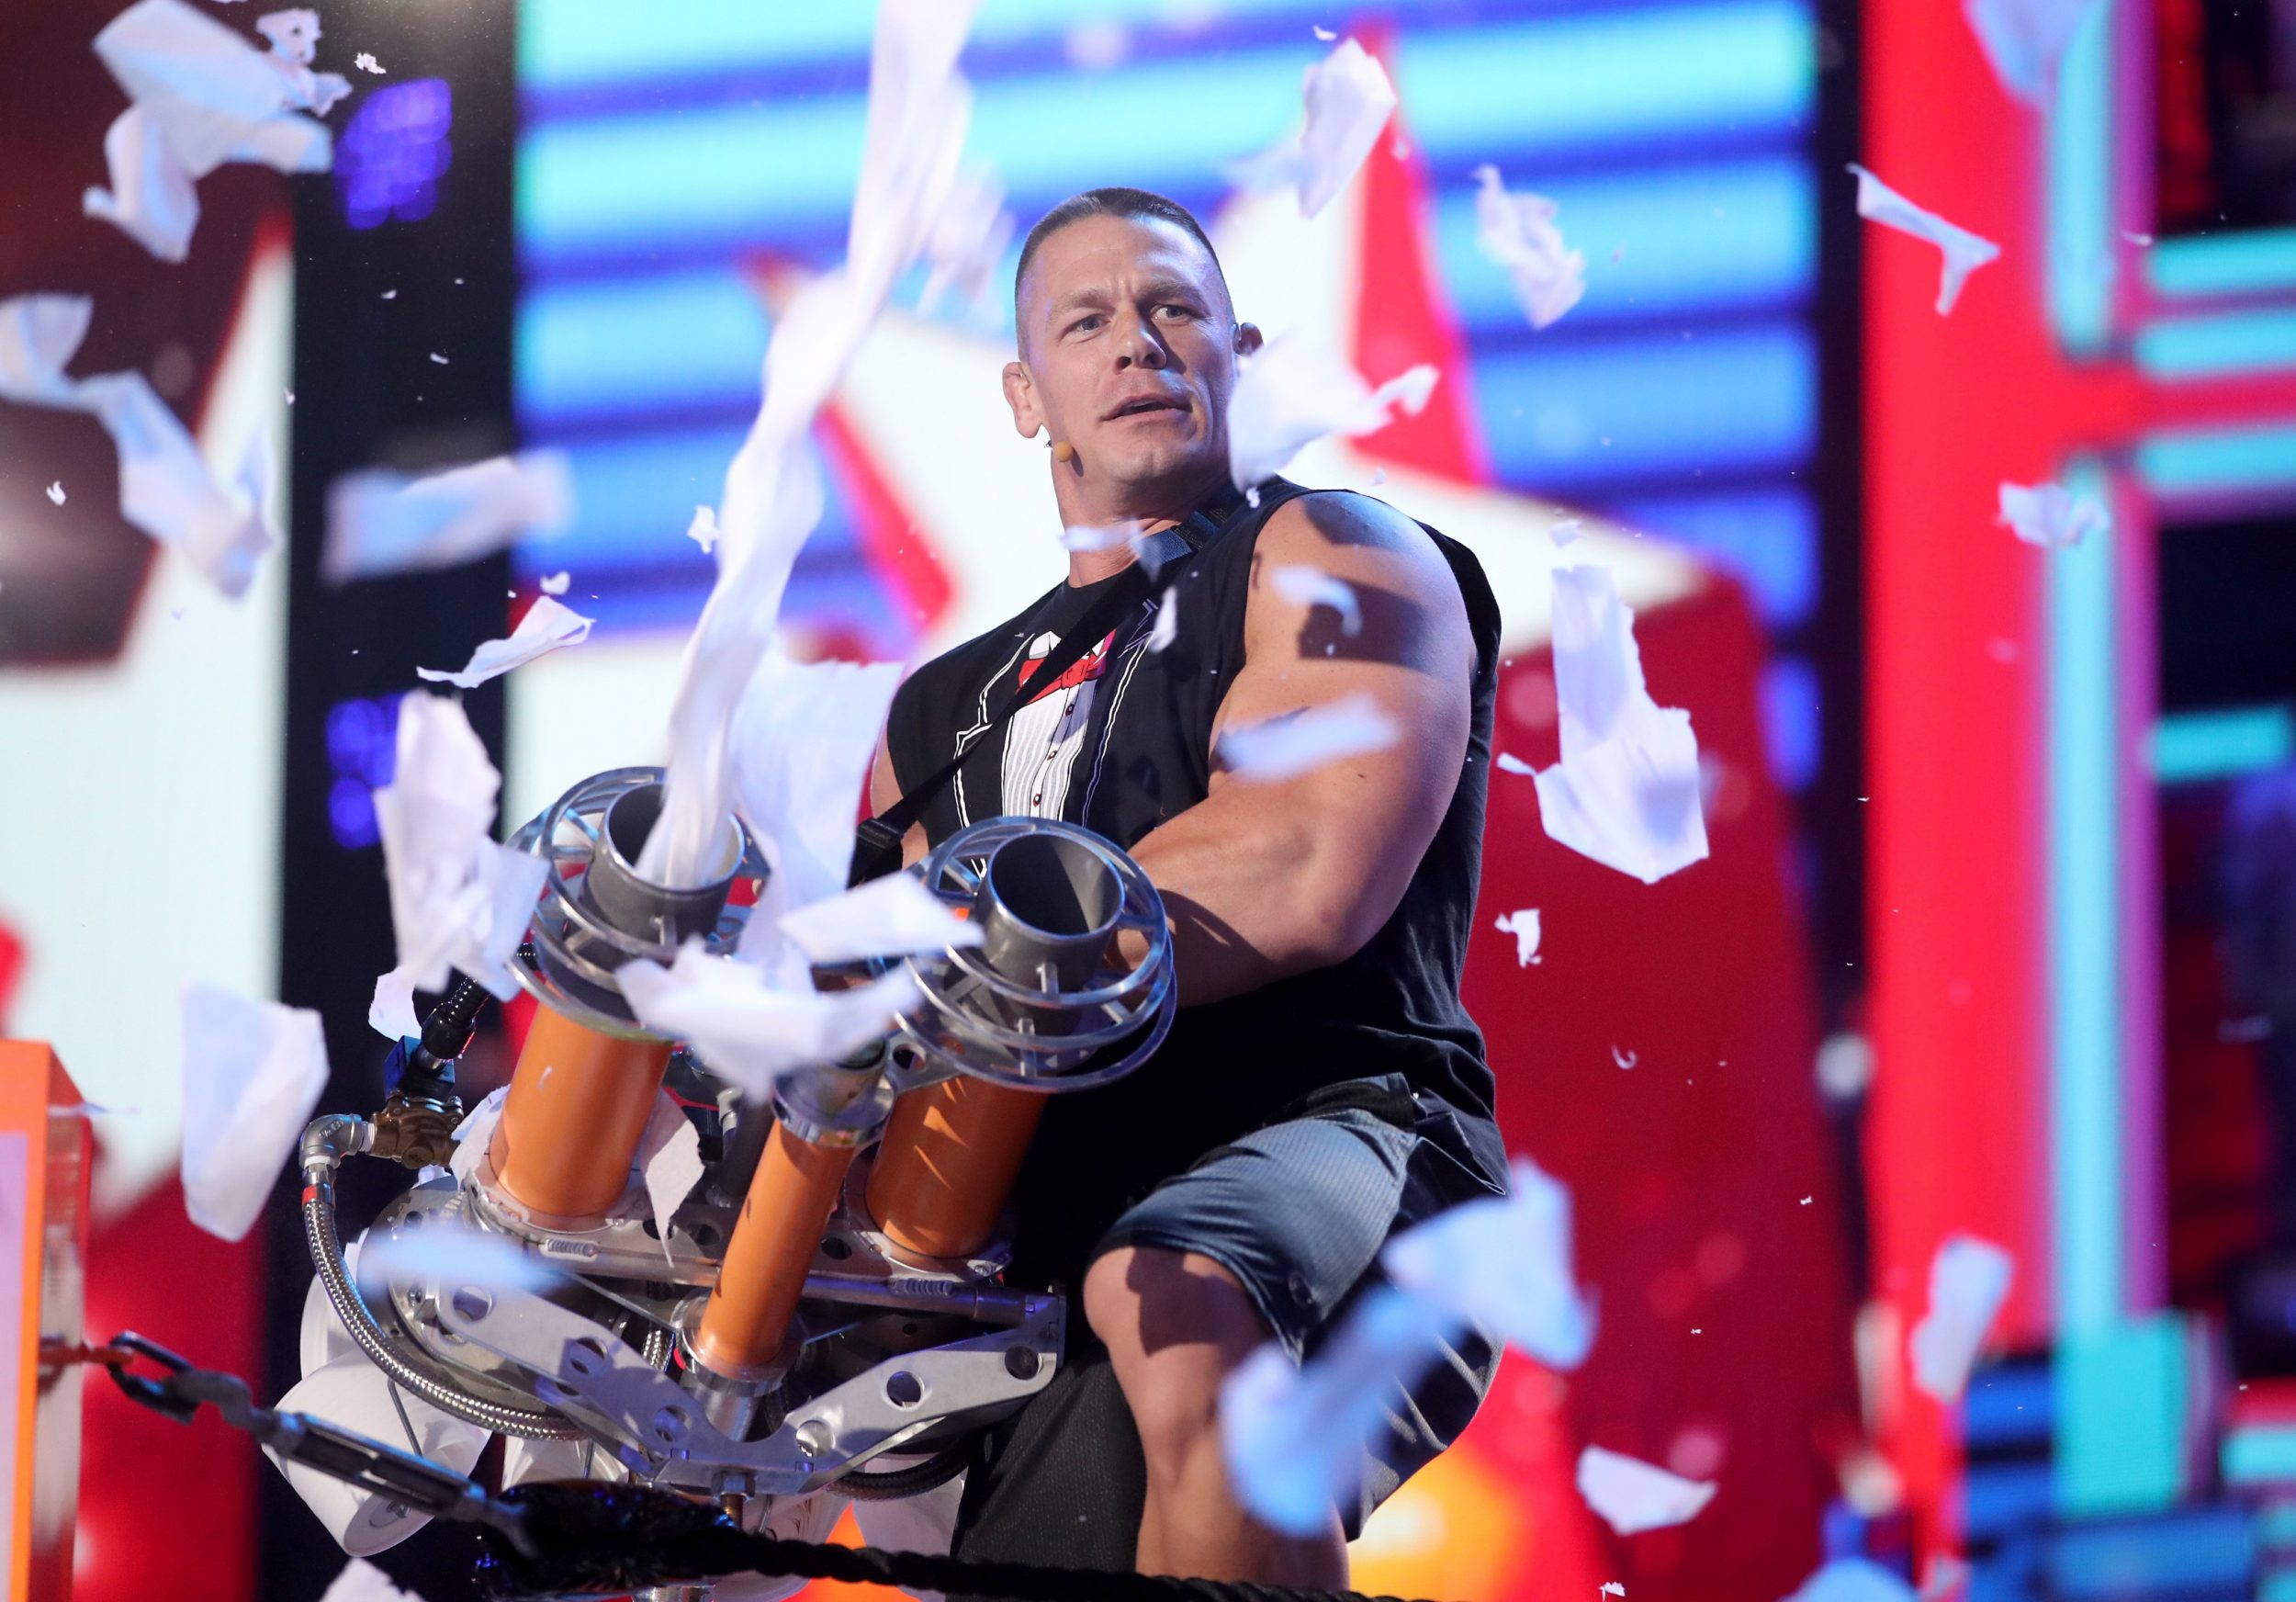 LOS ANGELES, CA - MARCH 11:  Host John Cena appears onstage at Nickelodeon's 2017 Kids' Choice Awards at USC Galen Center on March 11, 2017 in Los Angeles, California.  (Photo by Chris Polk/KCA2017/Getty Images for Nickelodeon)